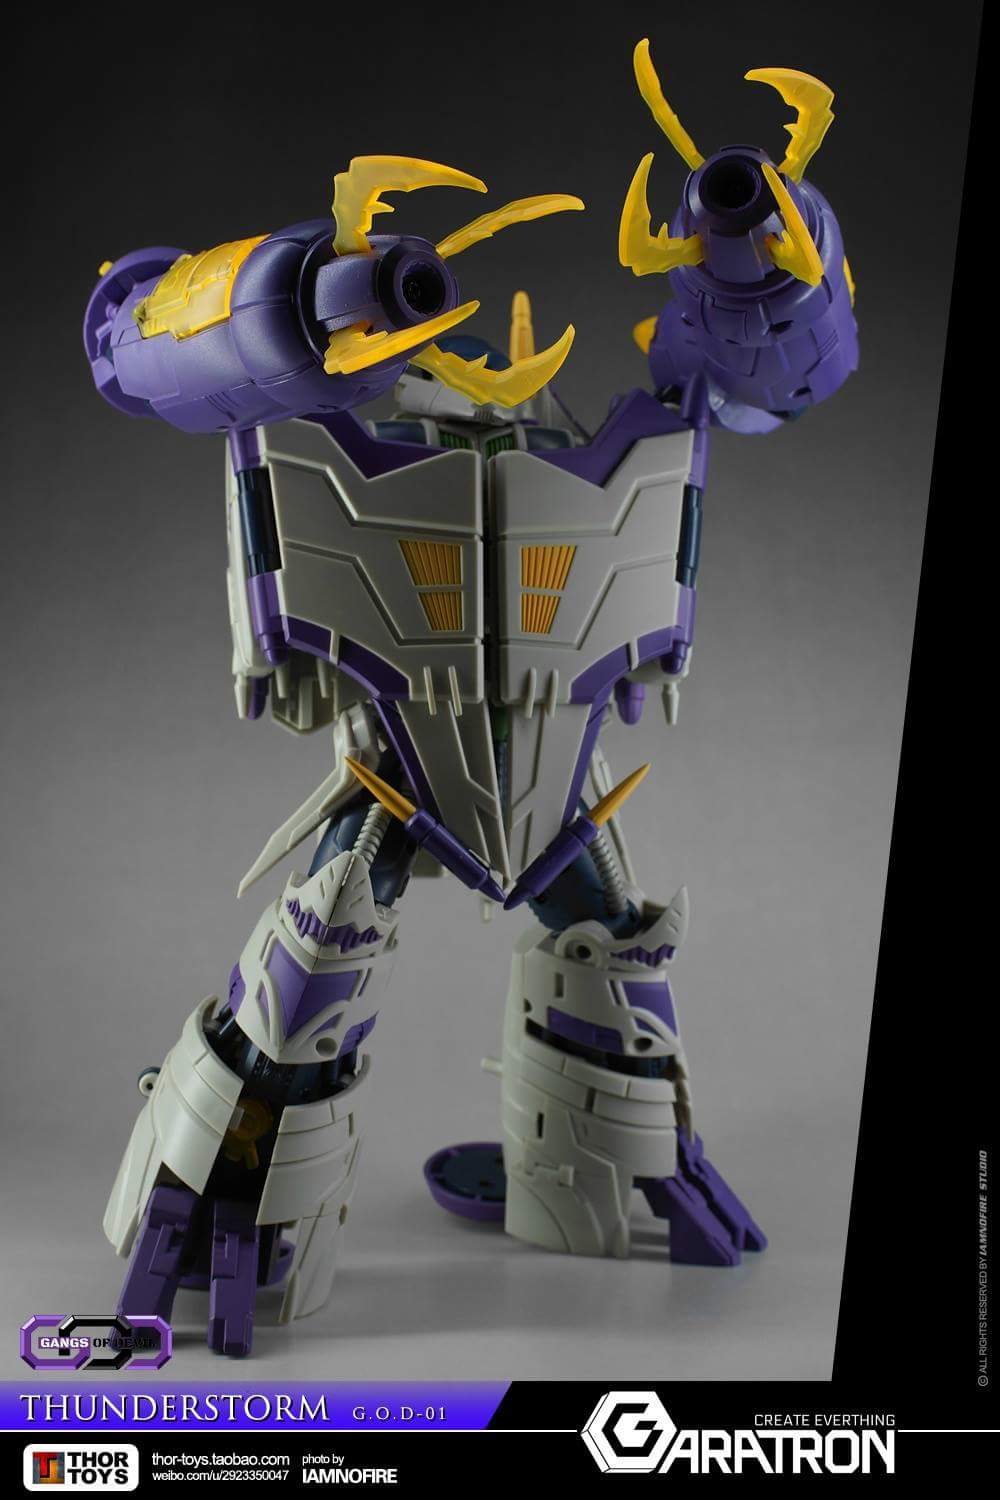 [Garatron] Produit Tiers - Gand of Devils G.O.D-01 Thunderstorm - aka Thunderwing des BD TF d'IDW - Page 2 1hue1iat